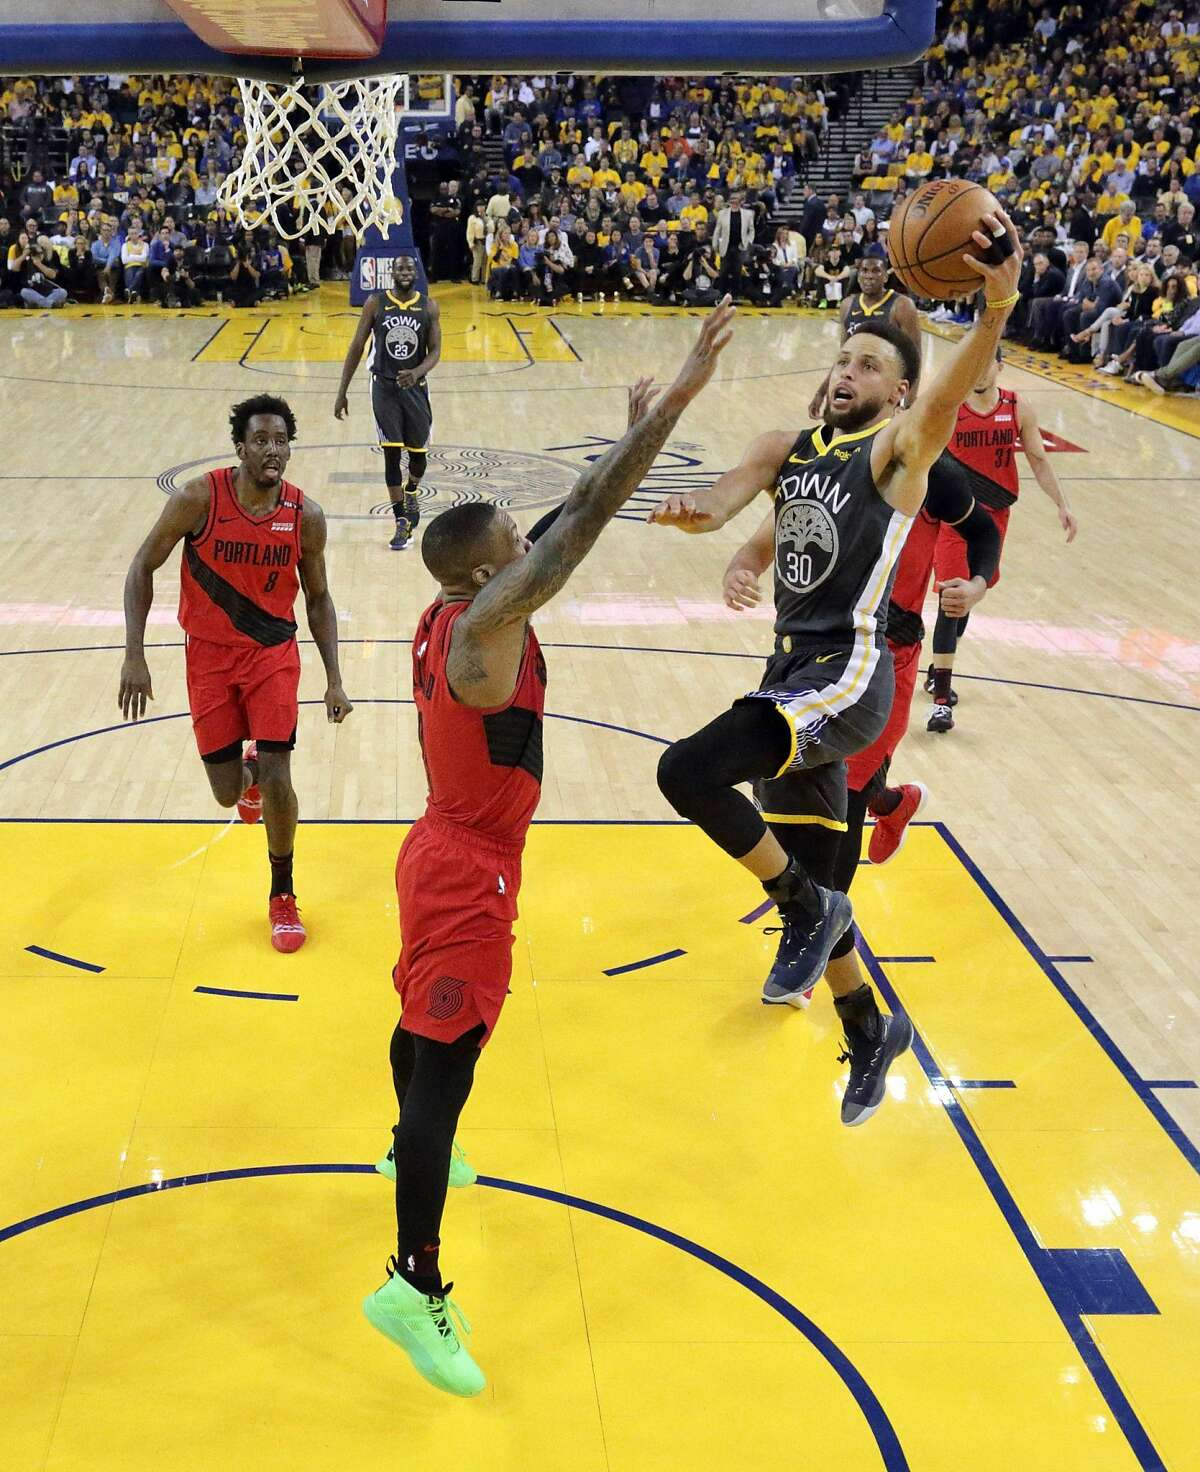 Stephen Curry (30) drives to the basket in the first half as the Golden State Warriors played the Portland Trailblazers in Game 2 of the Western Conference Finals at Oracle Arena in Oakland, Calif., on Thursday, May 16, 2019. After losing his ID bracelet at the game, writer Alex Tourk learned the team are champions in customer service, too.